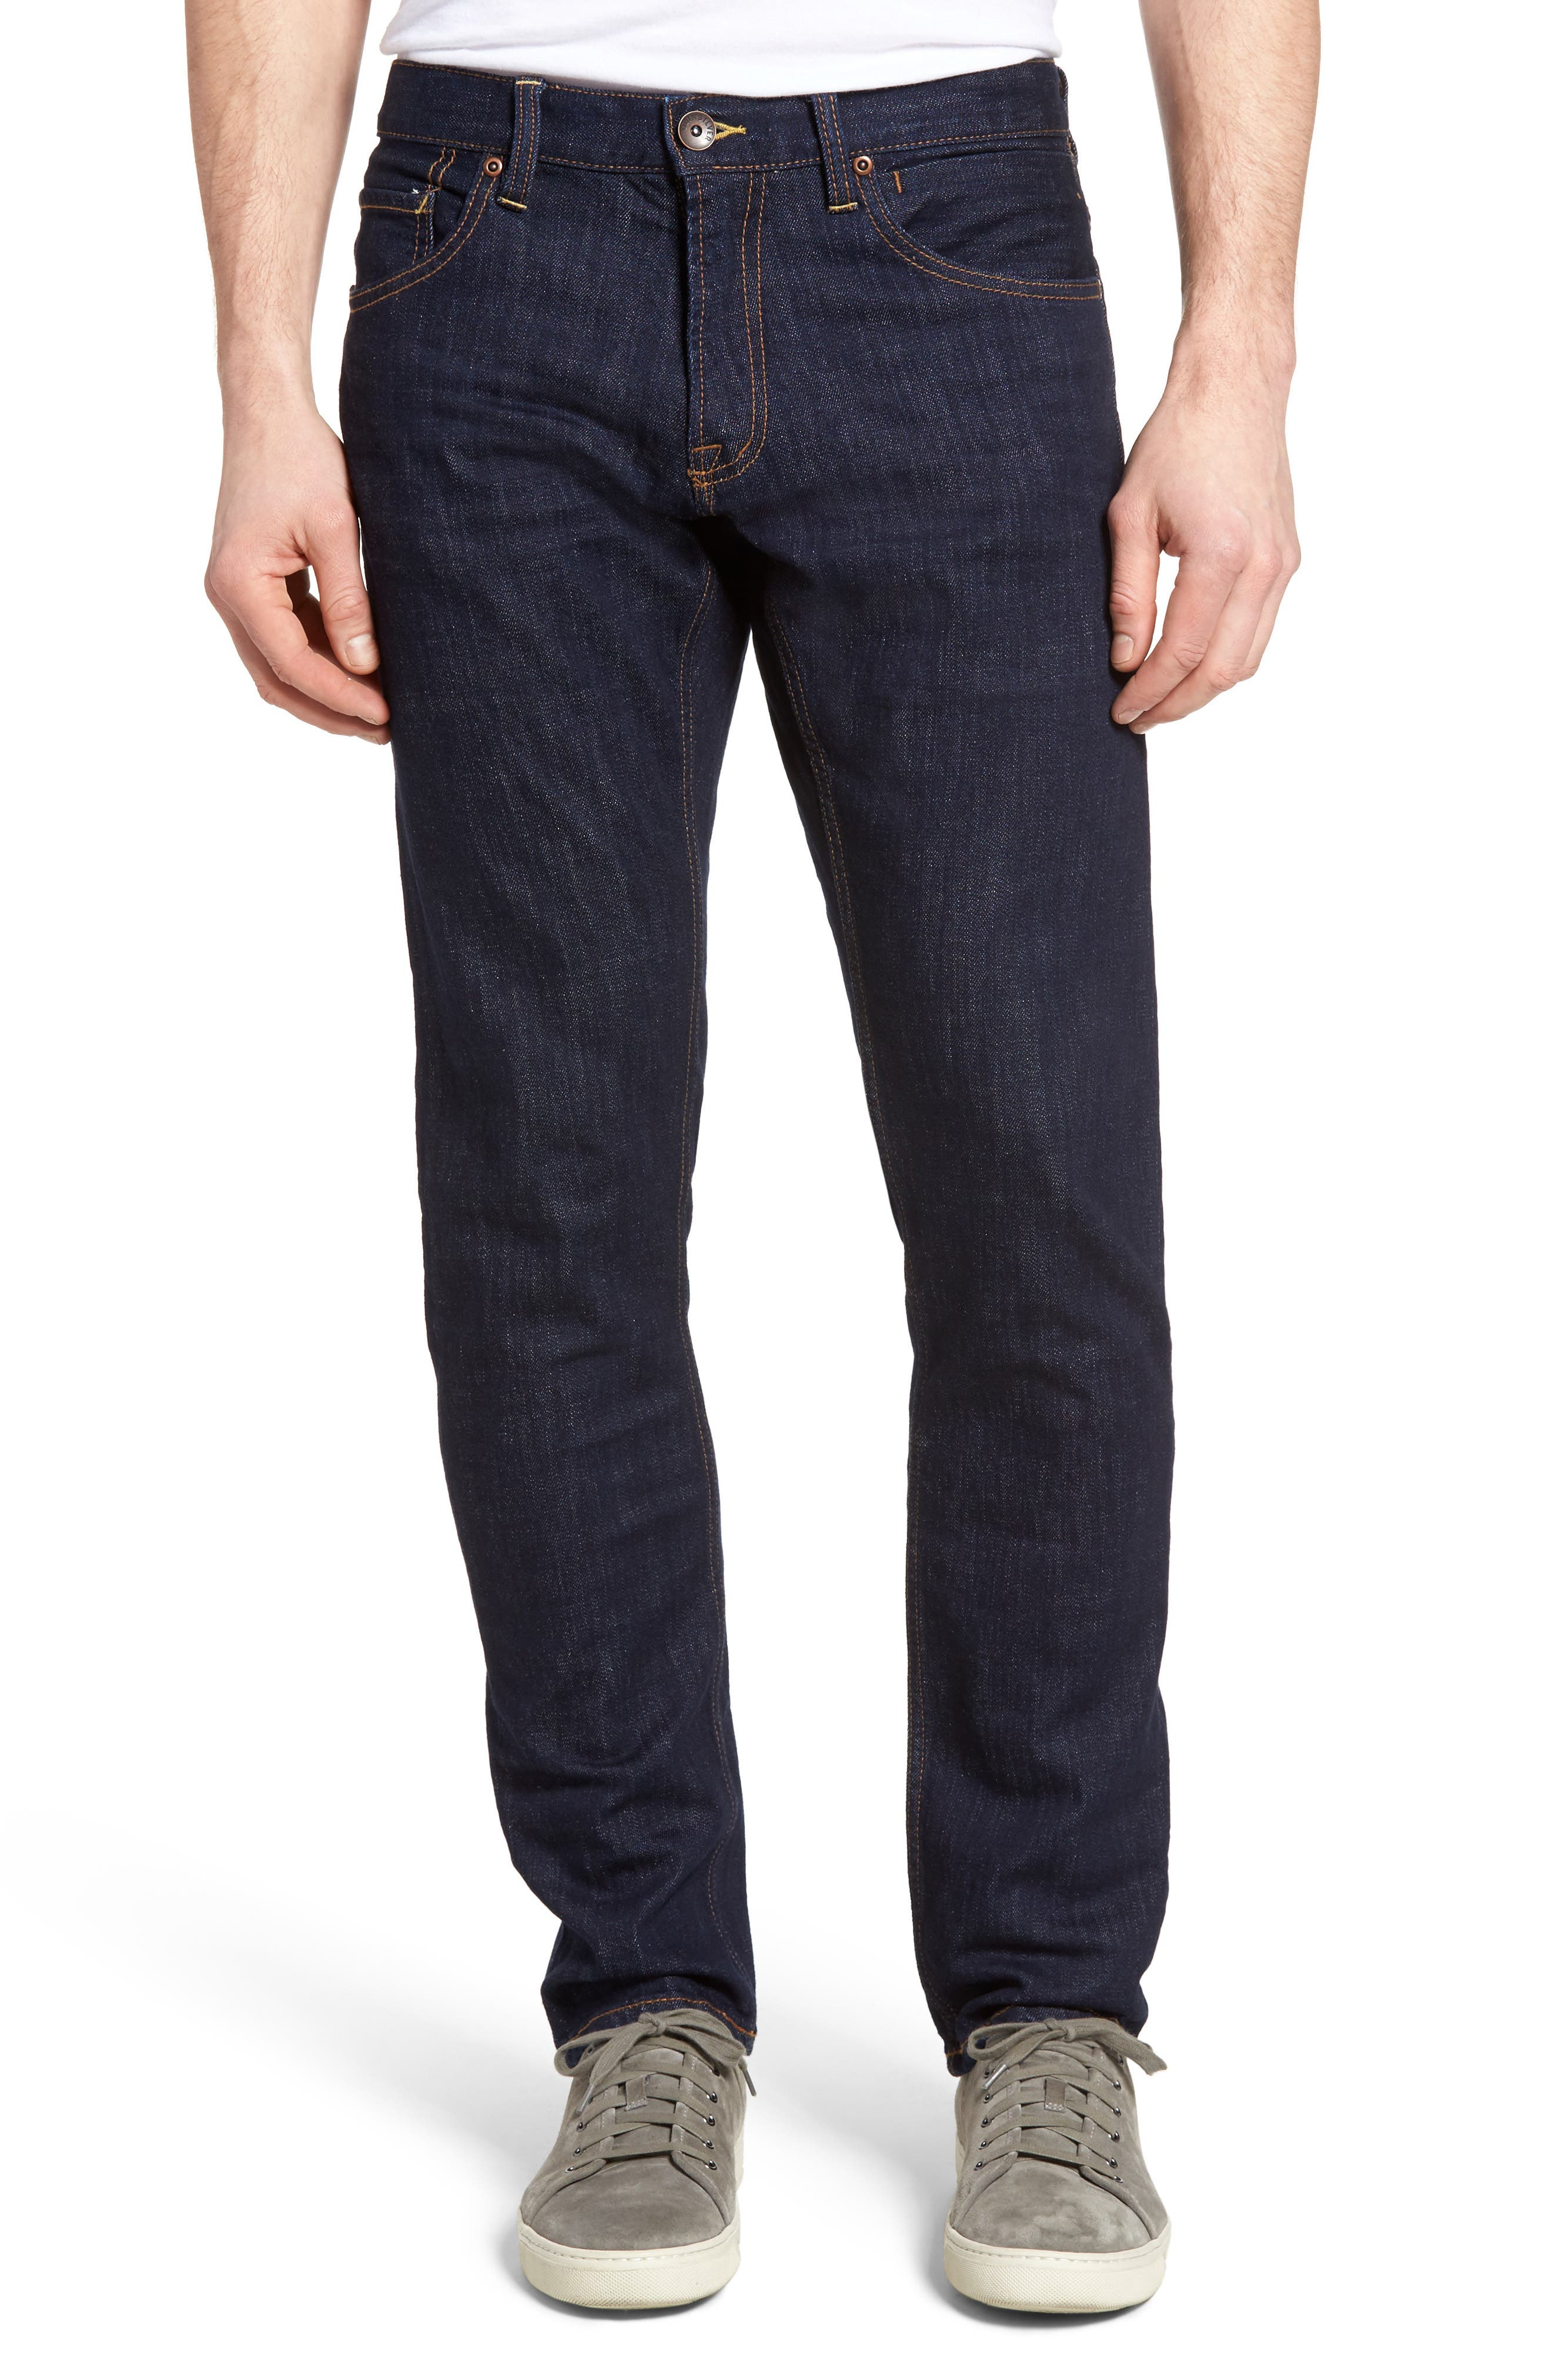 Quiksilver Revolver Slim Fit Jeans (Rinse)